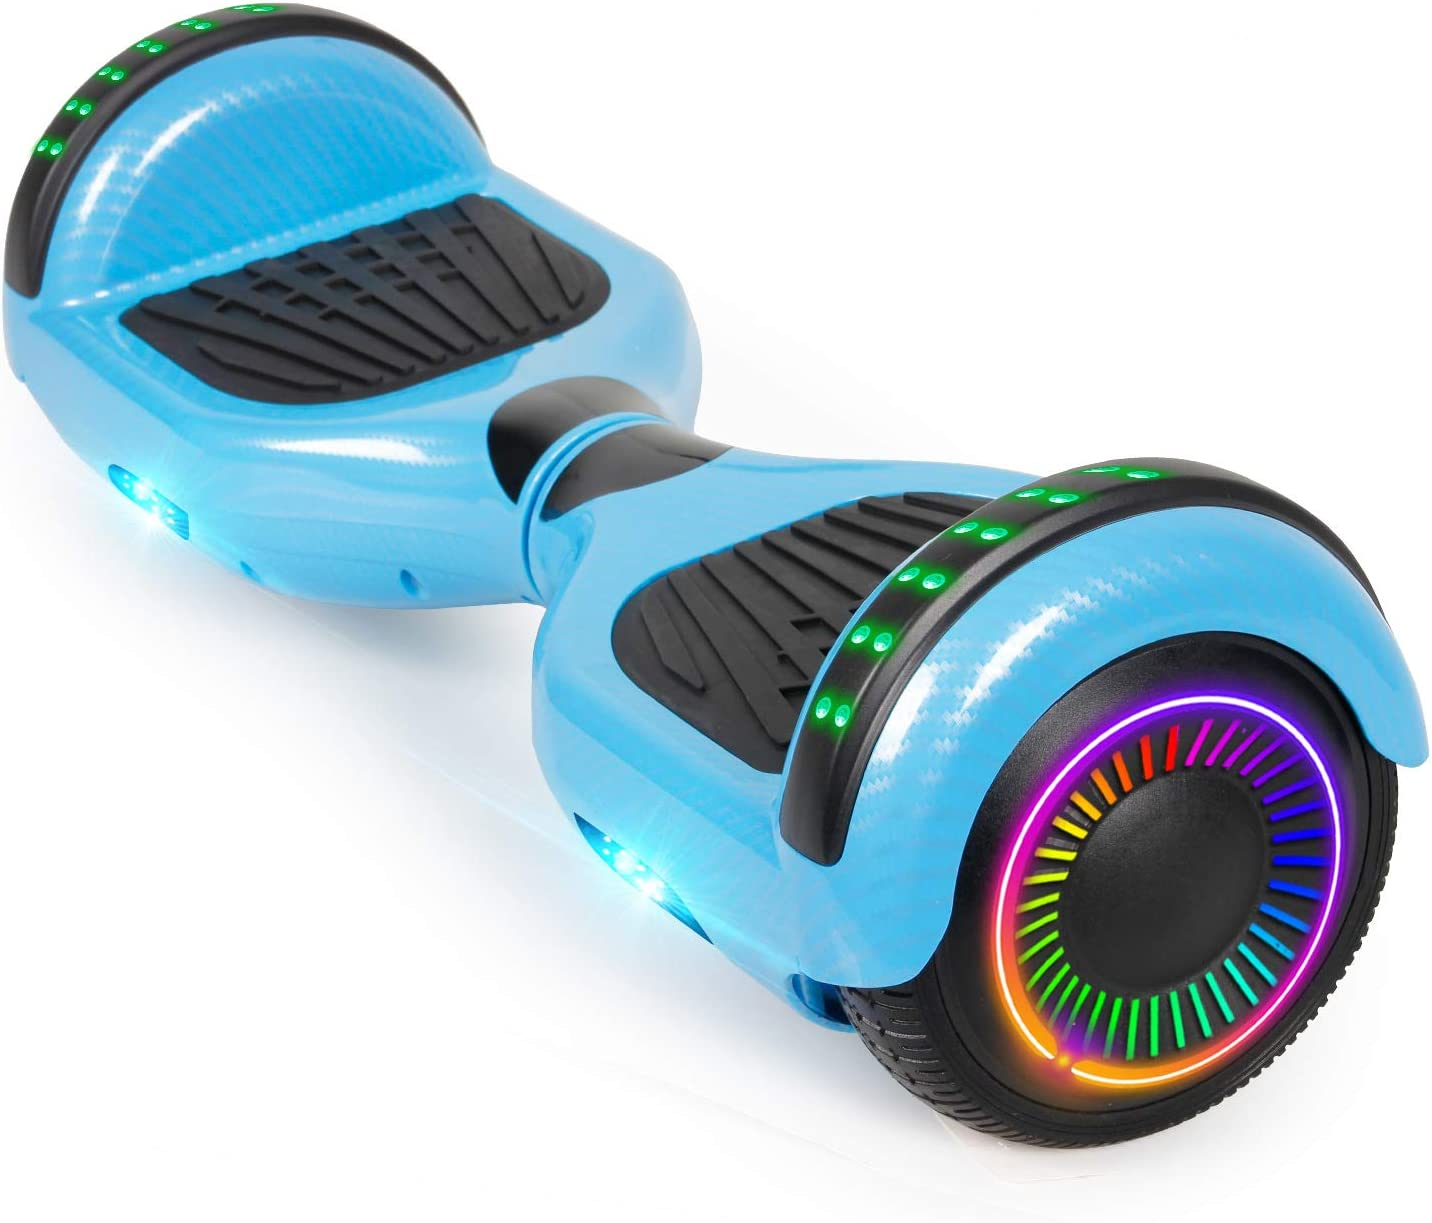 Felimoda Max 46% OFF Hoverboard 6.5 Inch self LED with Balancing mart